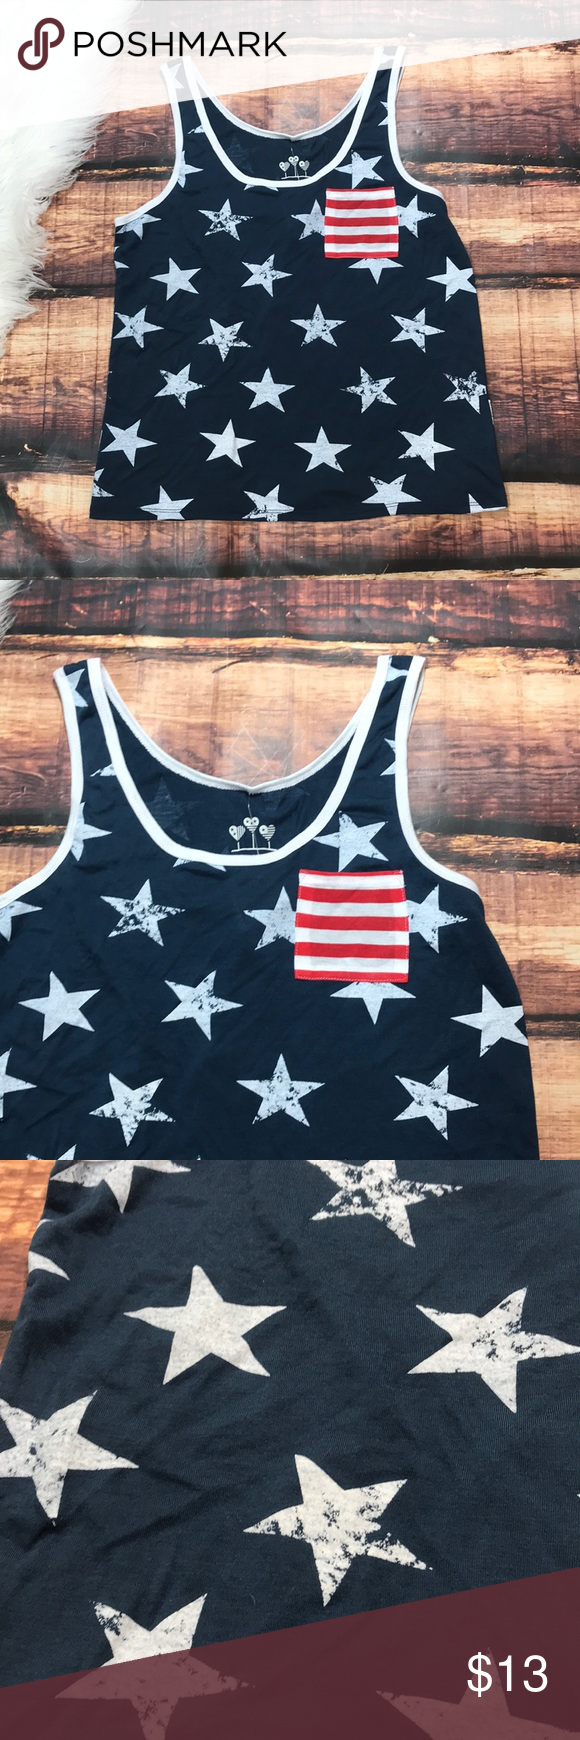 Stars And Stripes American Flag Tank Top Shirt A Super Cute Way To Be Patriotic On The 4th Of July This Tank Top Is American Flag Tank Clothes Design Fashion